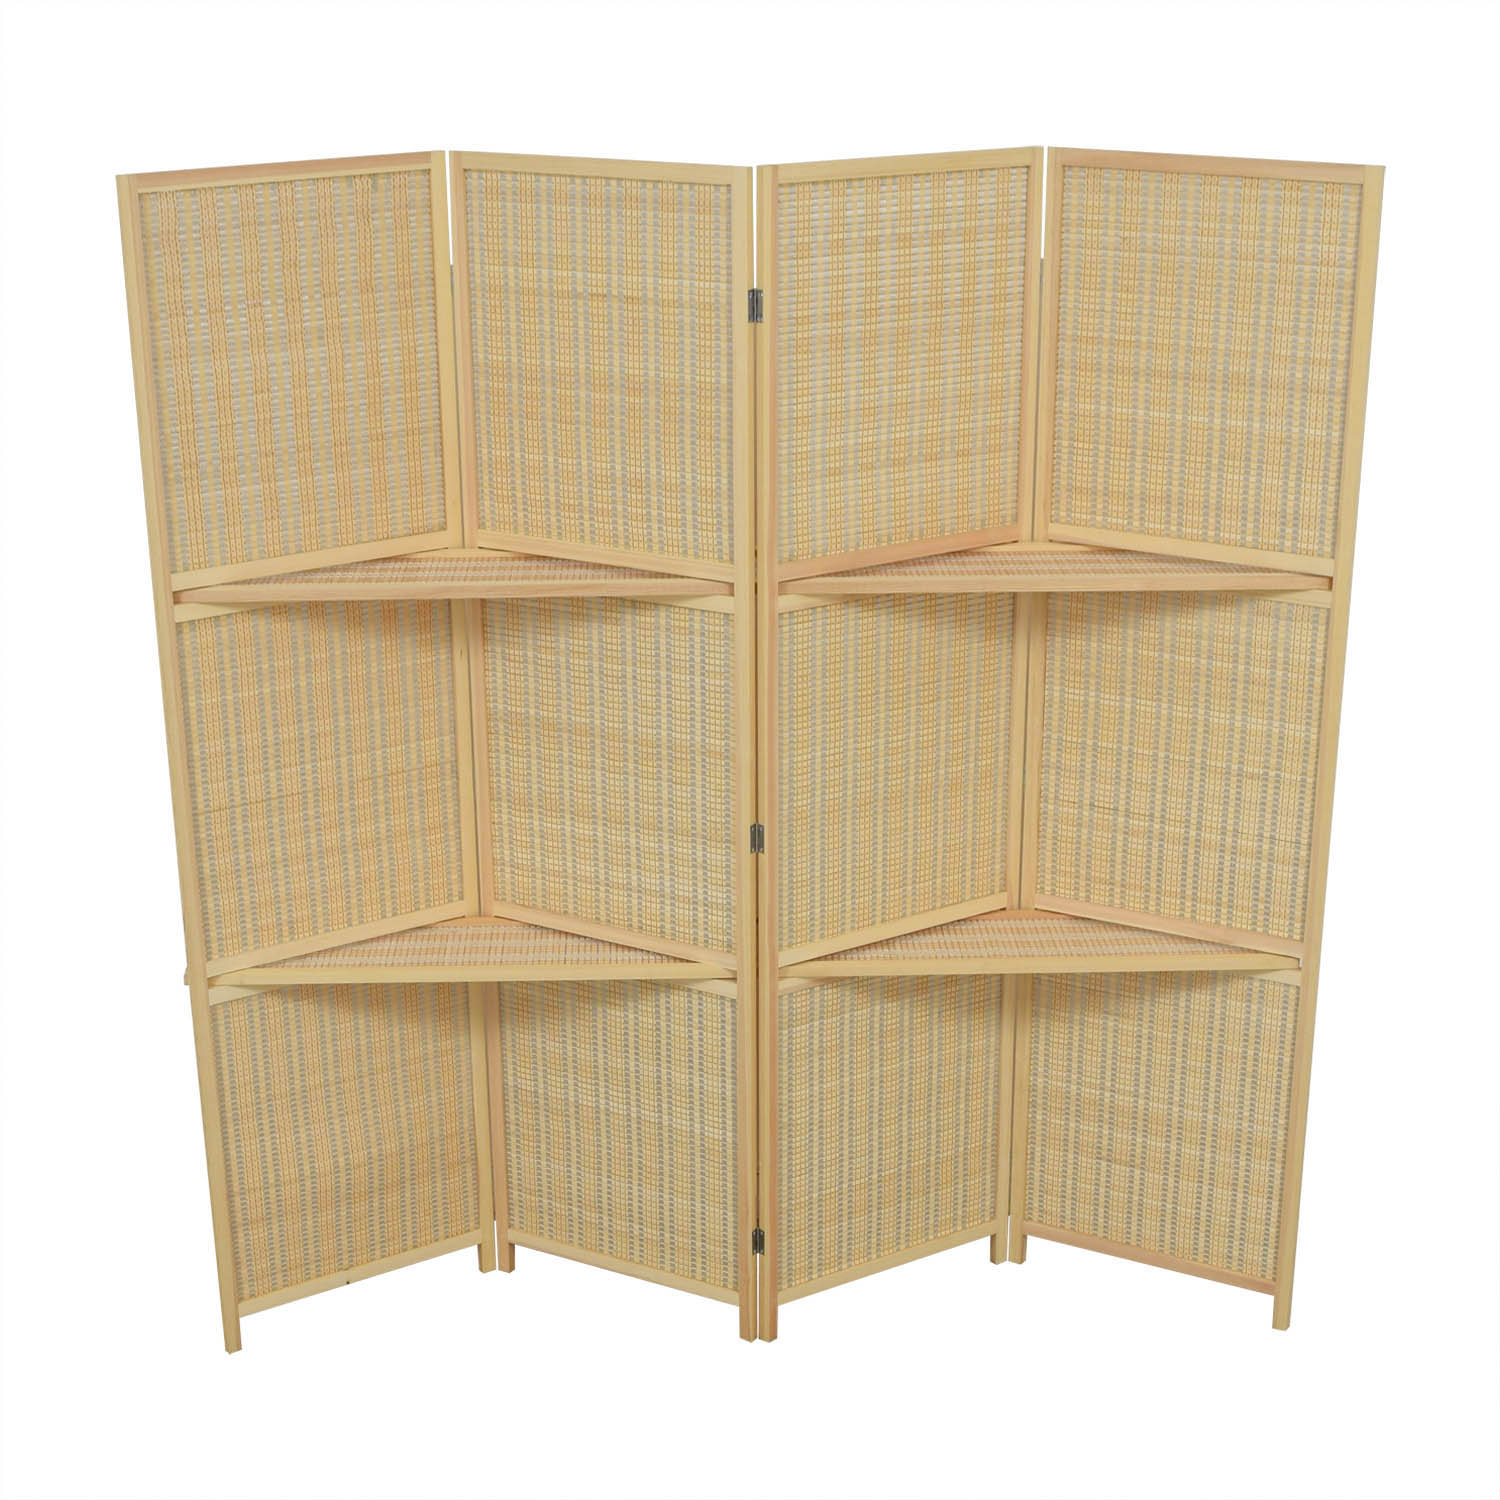 MyGift Woven Bamboo Four Panel Divider Screen w/Removable Storage Shelves sale